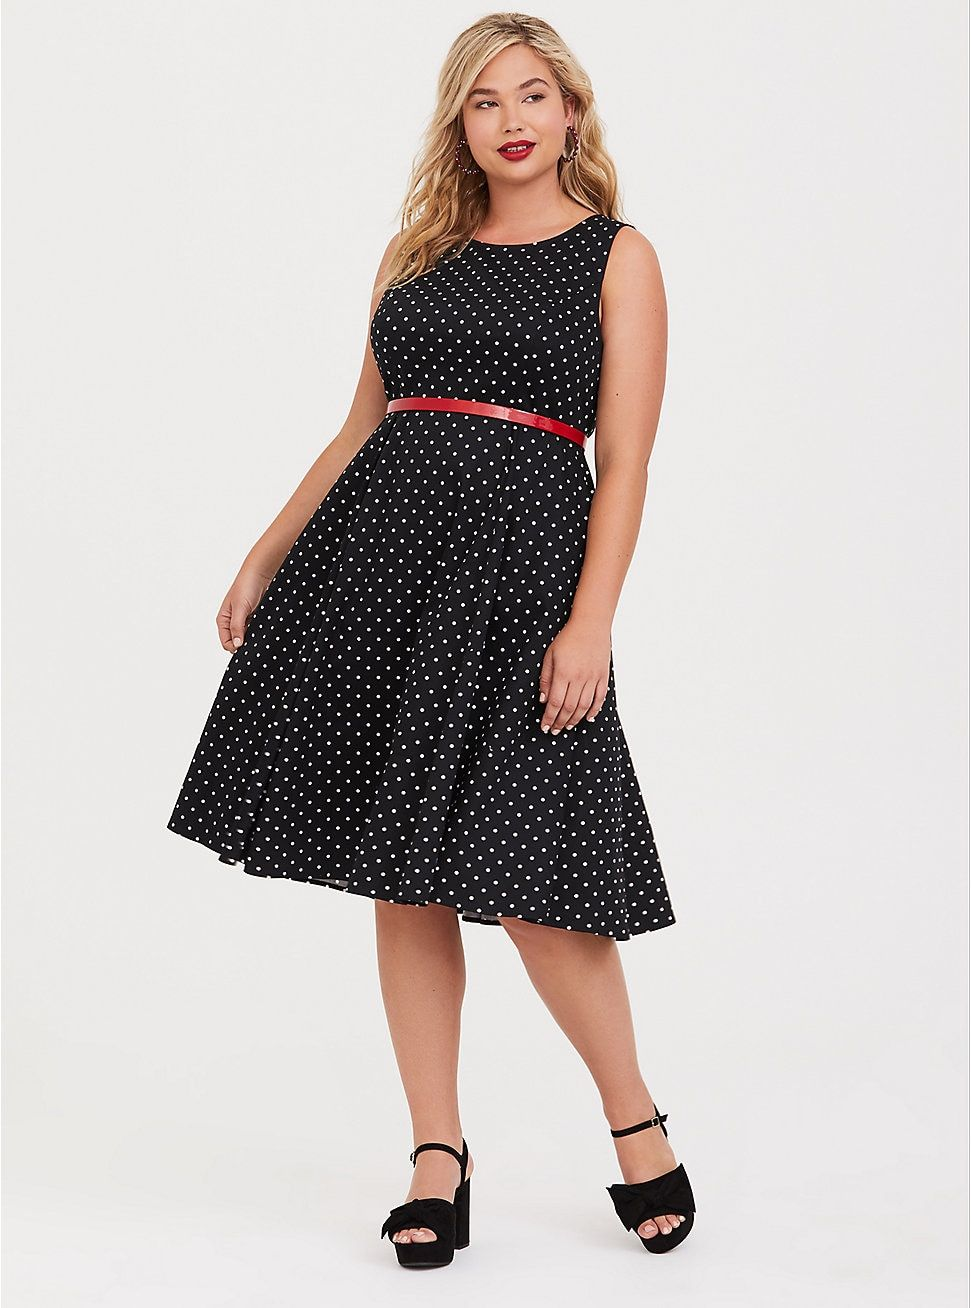 Retro Chic Polka Dot Bow Back Skater Dress in 2019 | Clothes ...